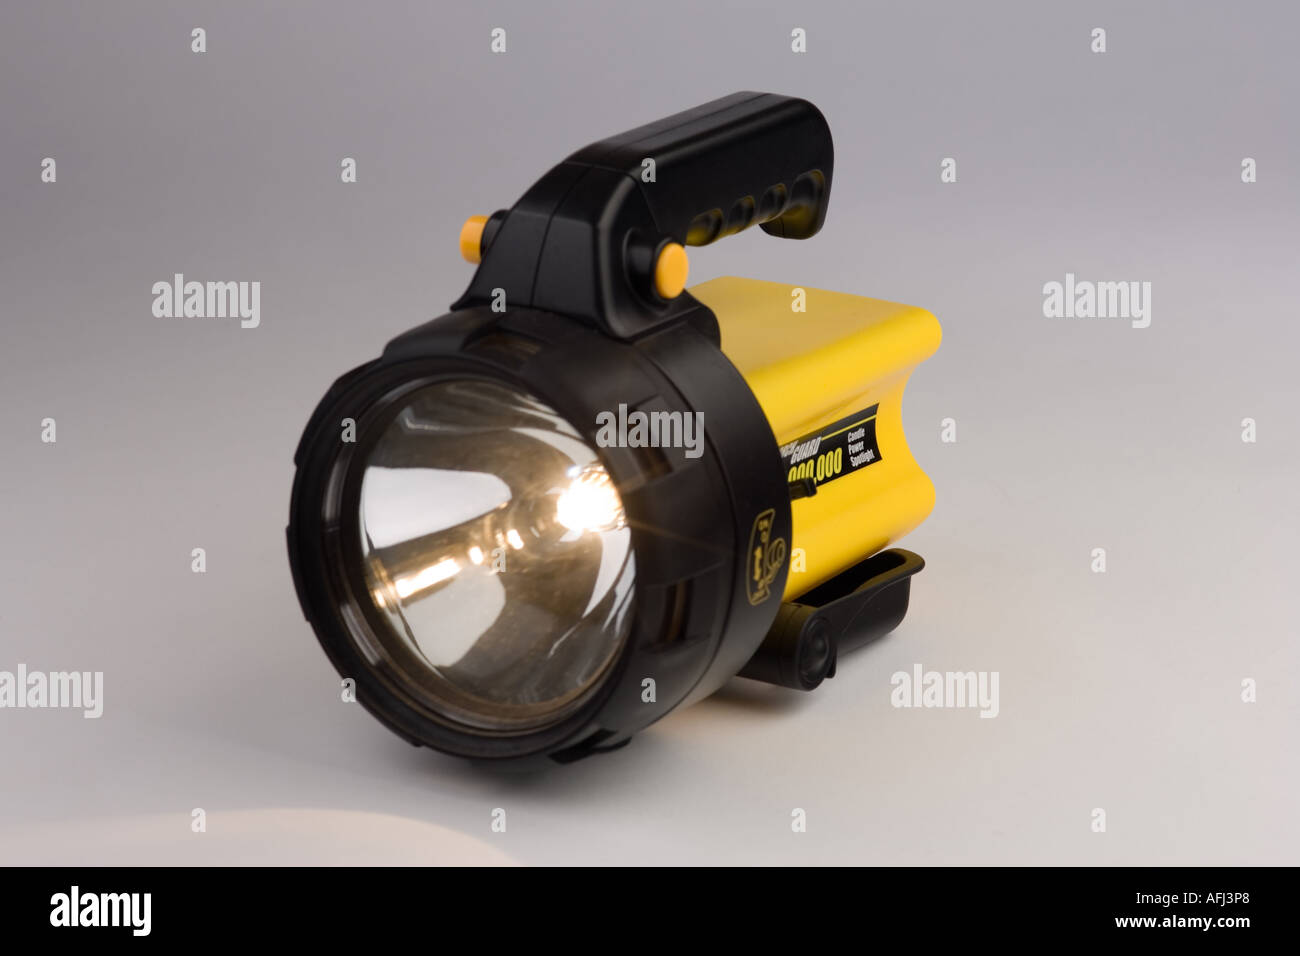 rechargeable torch / flashlight - Stock Image